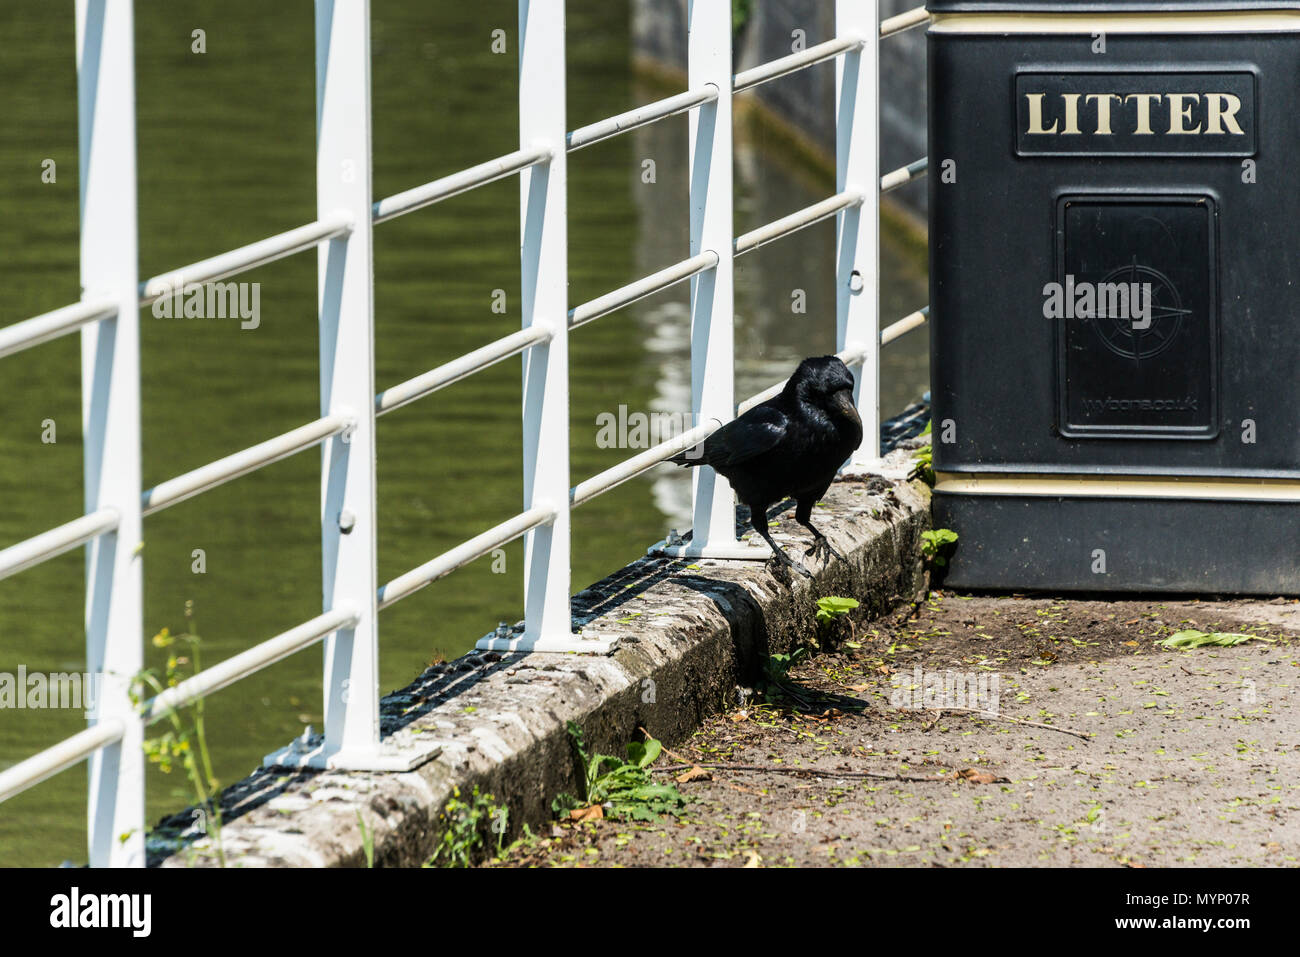 A carrion crow (Corvus corone) jumping down from railings on to the towpath next to a litter bin by the Kennet & Avon canal - Stock Image